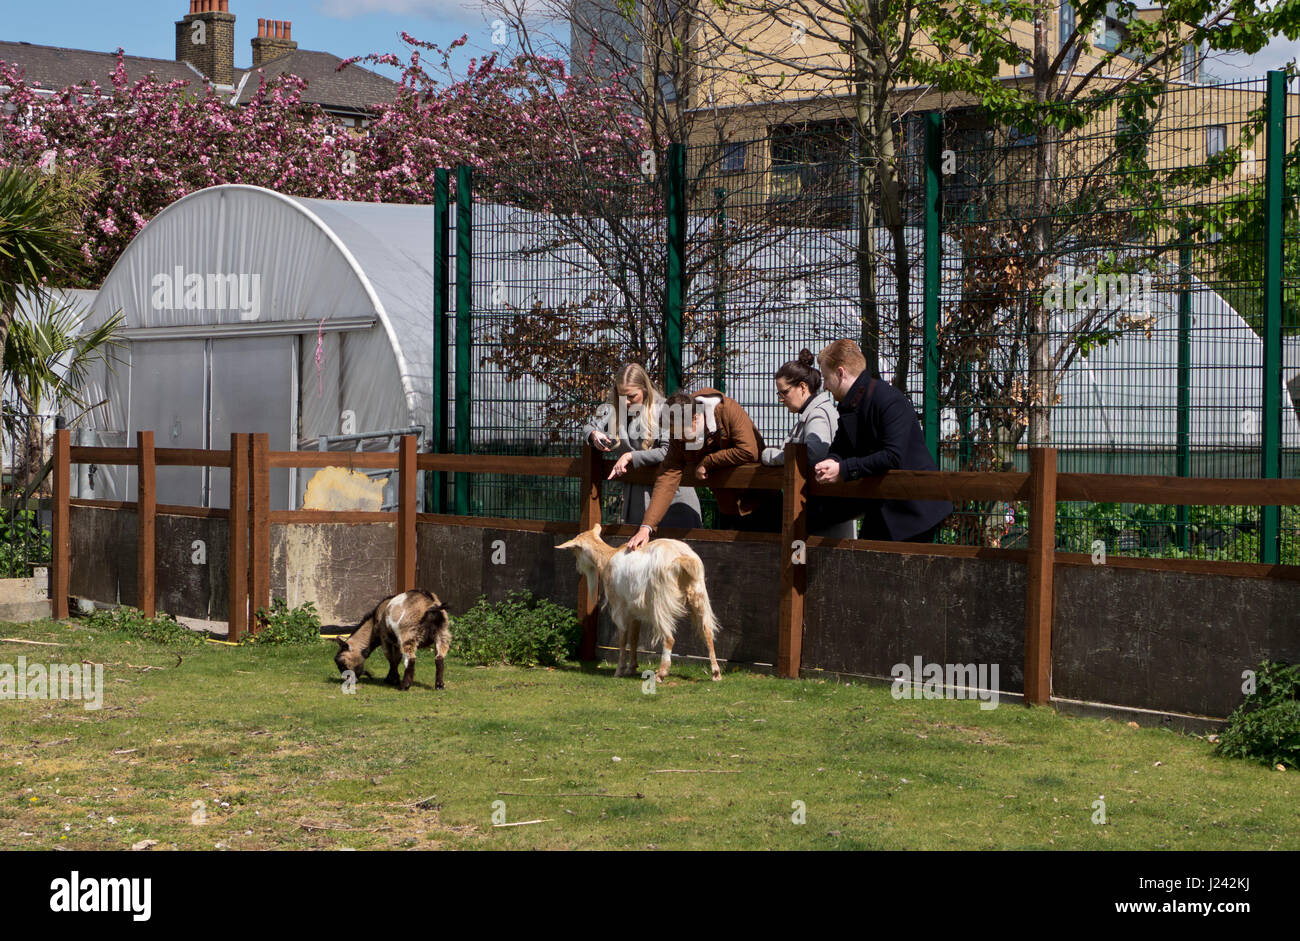 Families visiting the Spitalfields City Farm in east London,England,UK - Stock Image